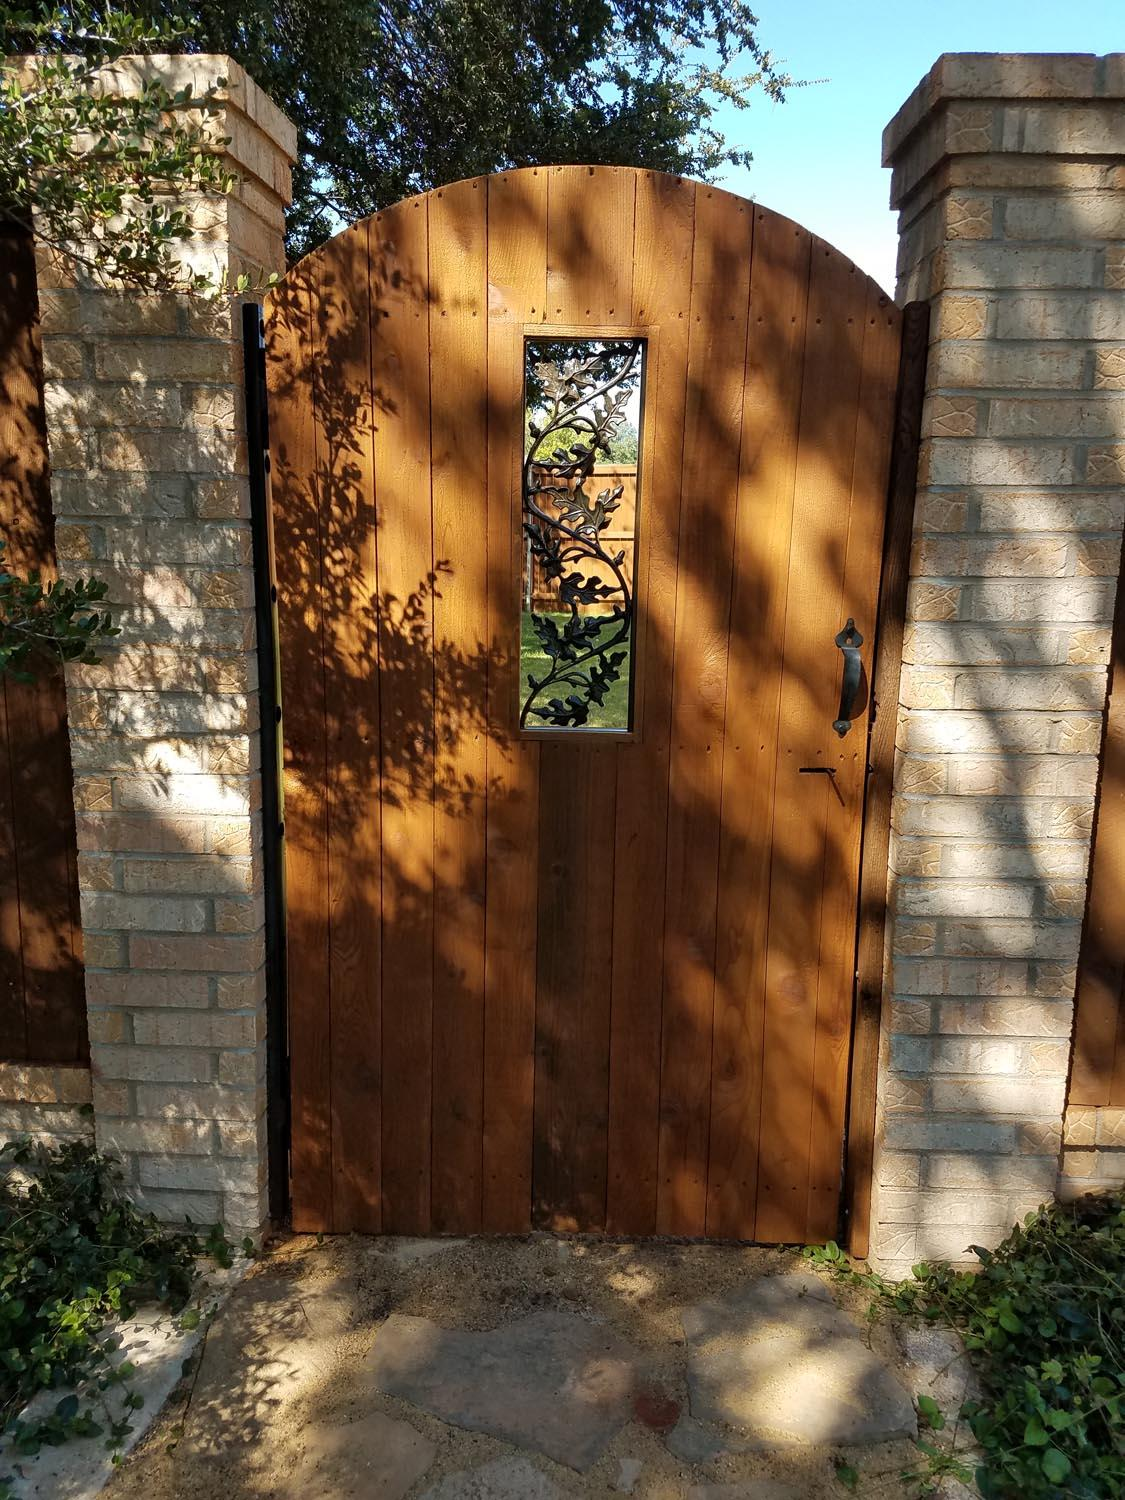 Best Value Fencing And Home Services image 20